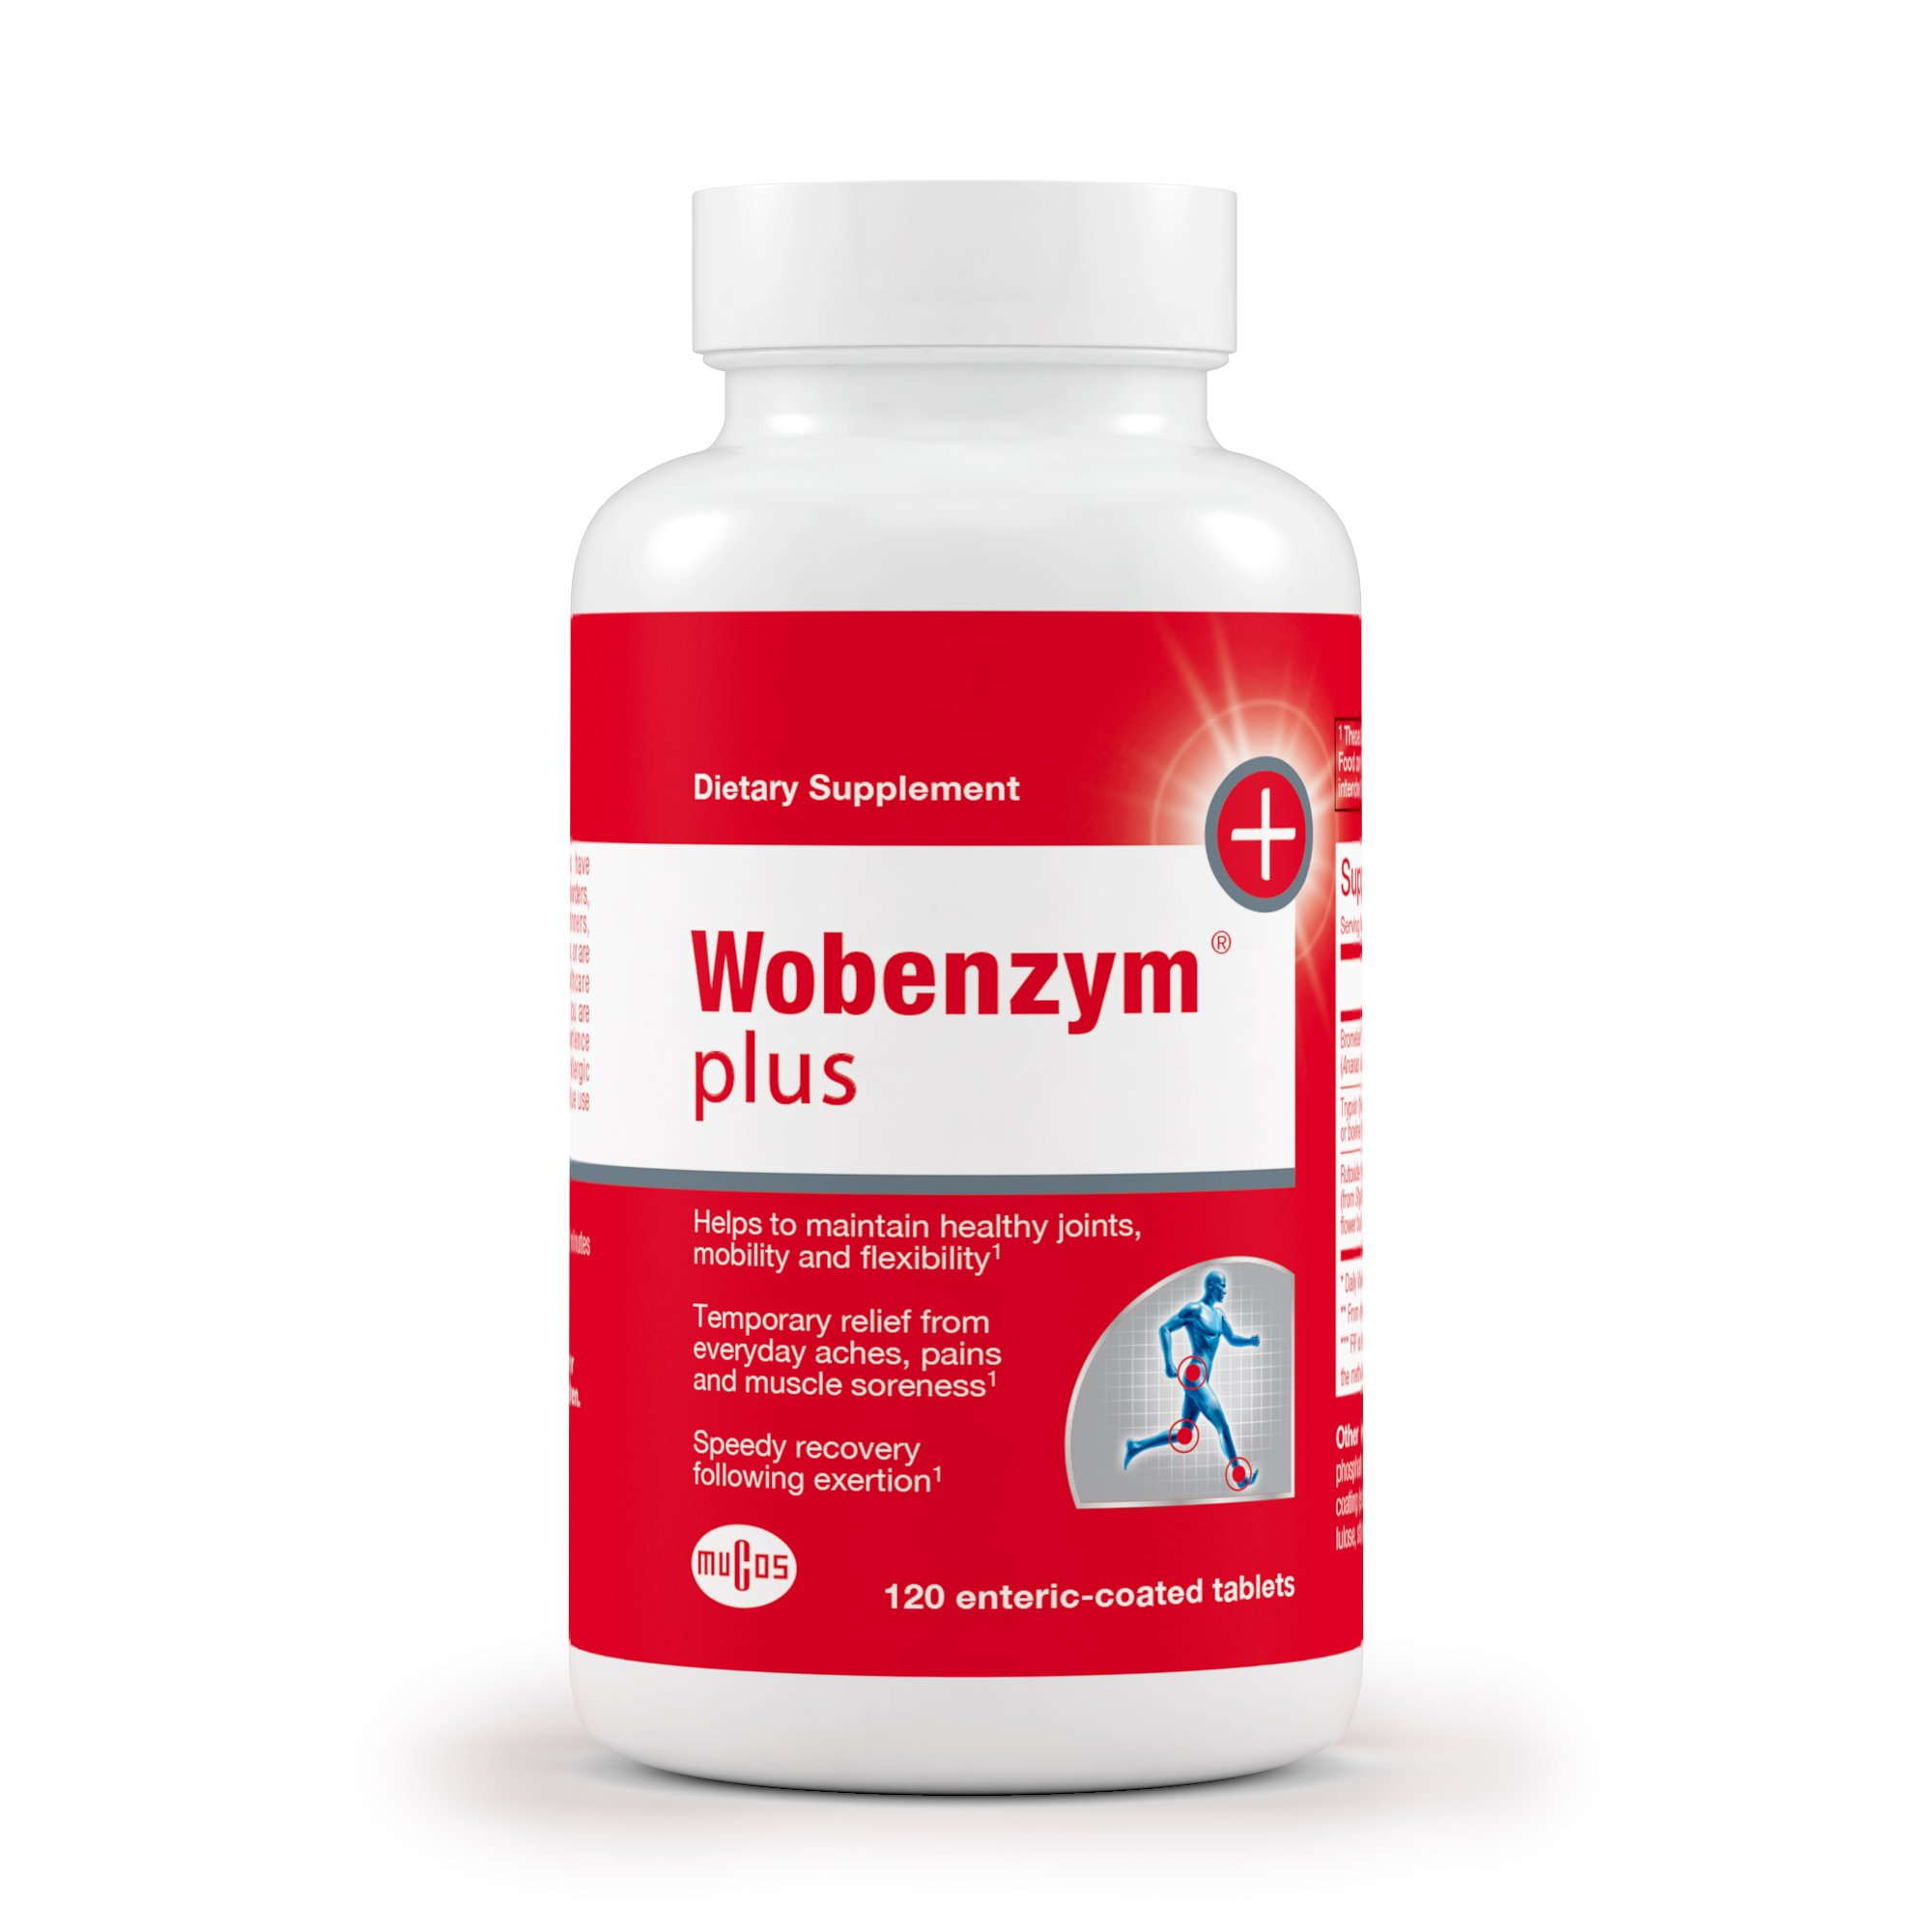 Wobenzym - Wobenzym Plus - Number One Joint Health Pill in Germany*, Supports Joint Function, Muscles and Recovery after Exertion - 120 Enteric-Coated Tablets by Wobenzym